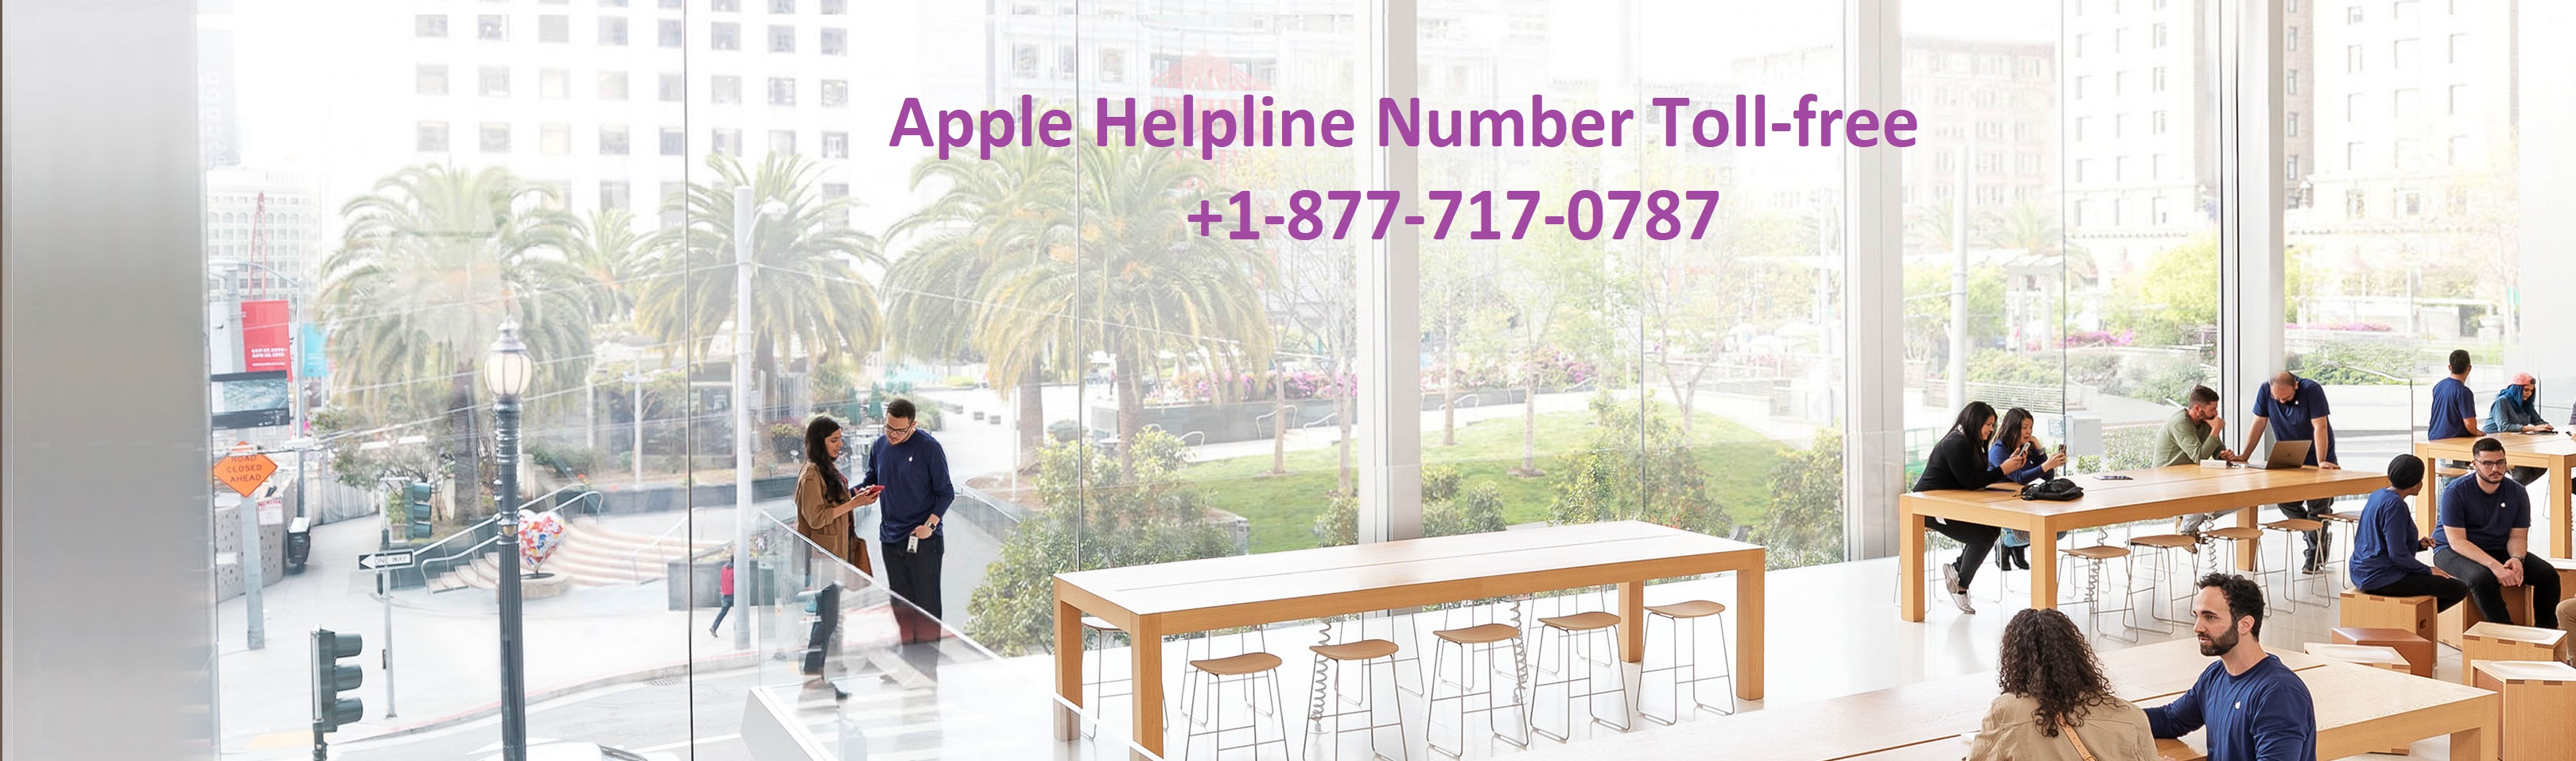 Apple iCloud Support Phone Number 1-877-717-0787 TollFree